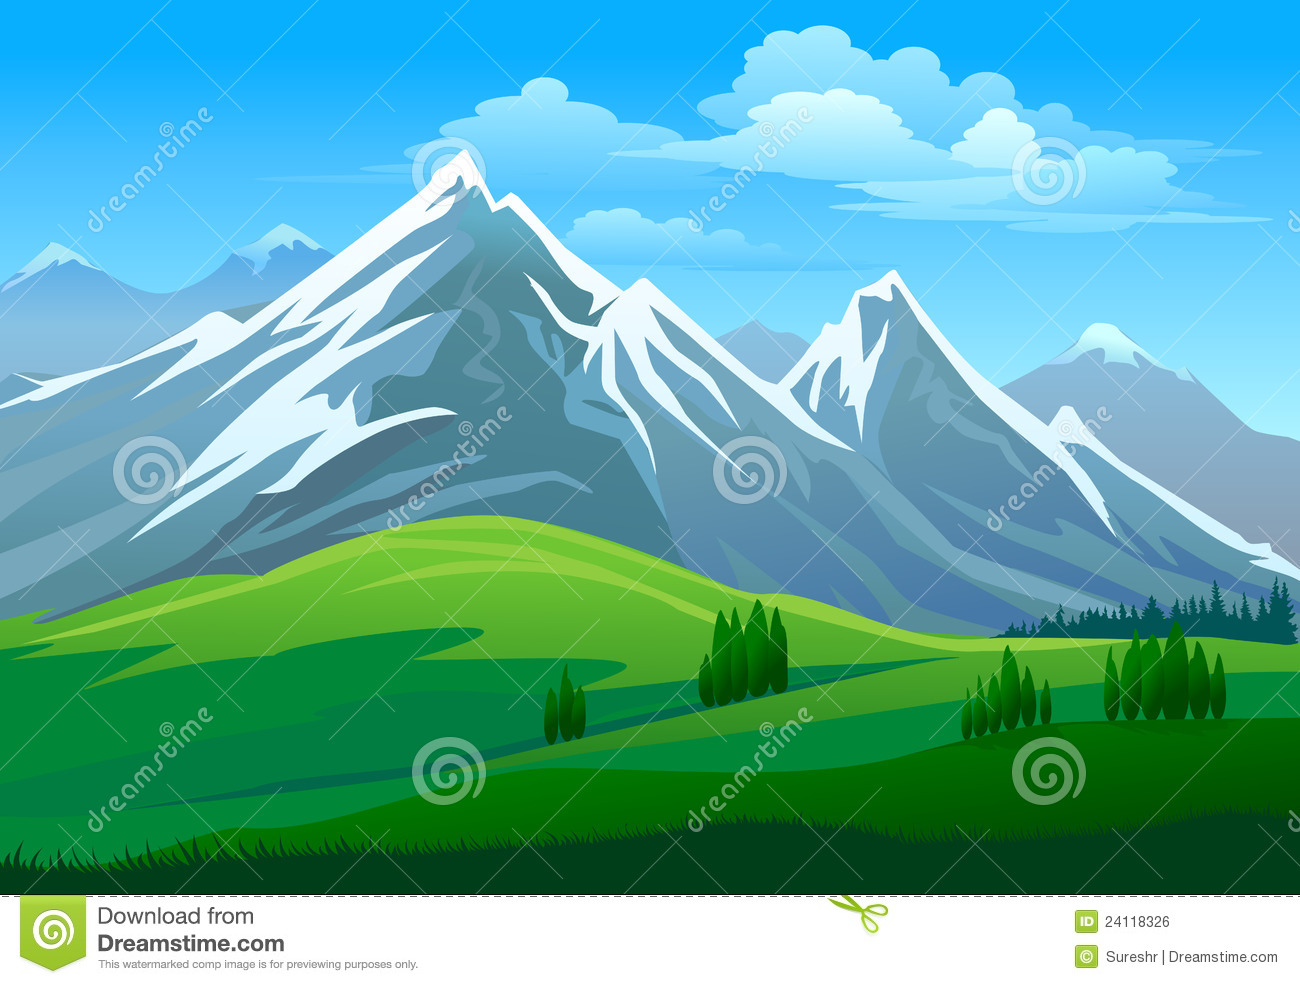 Scenery clipart mountain valley #3